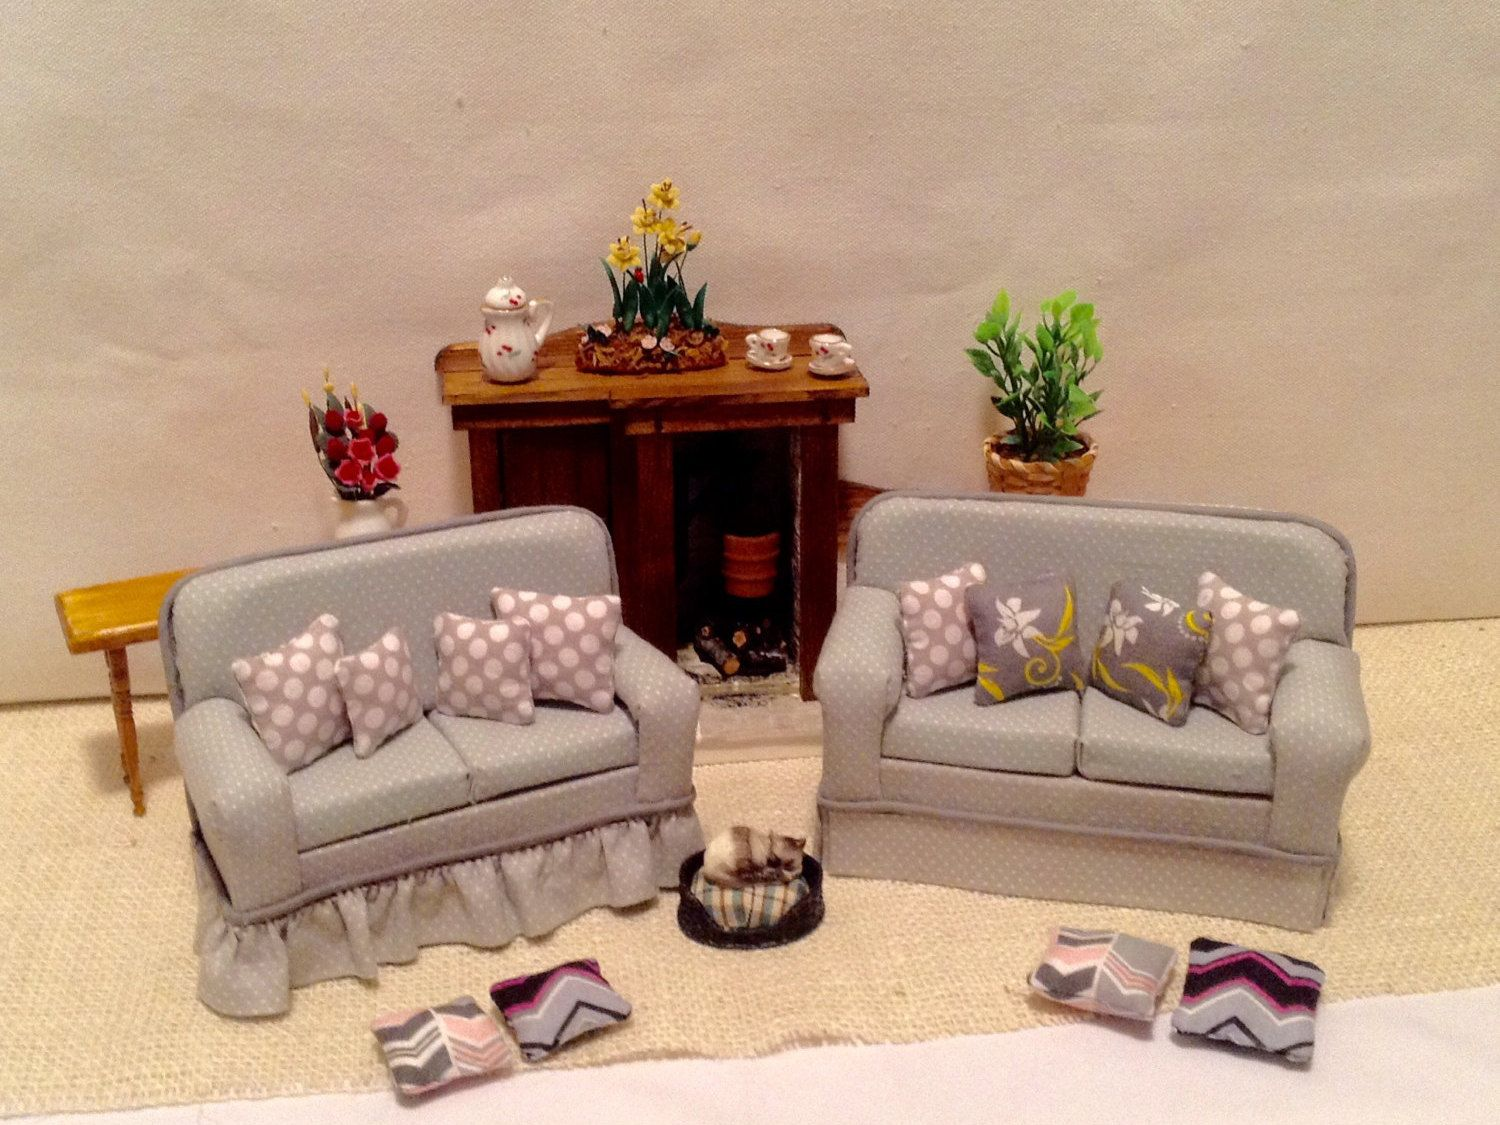 Traditional Or Cottage Grey Couch With 4 Pillows For 1:12 Scale